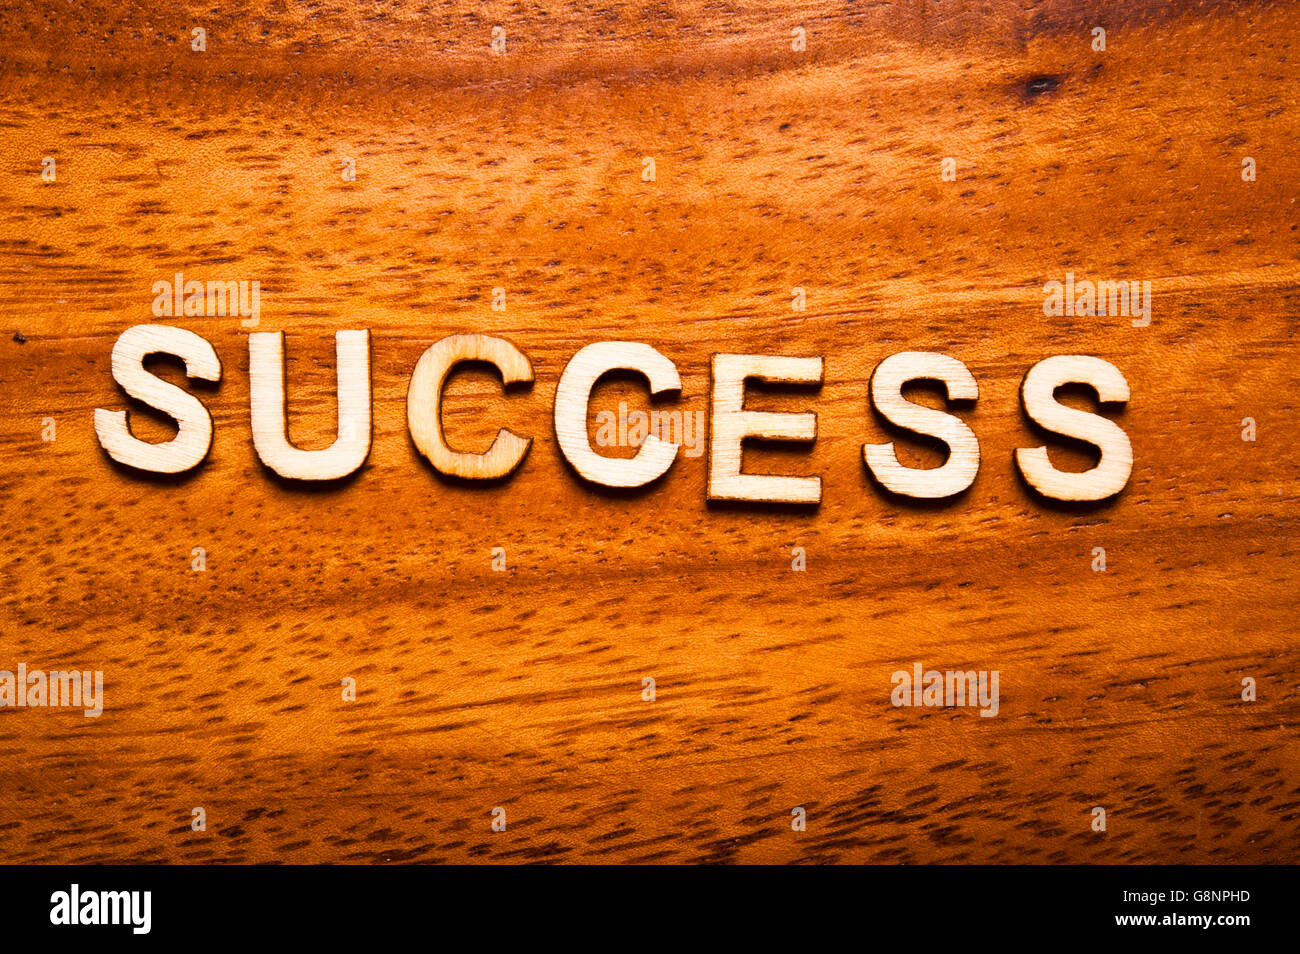 success concept - Stock Image